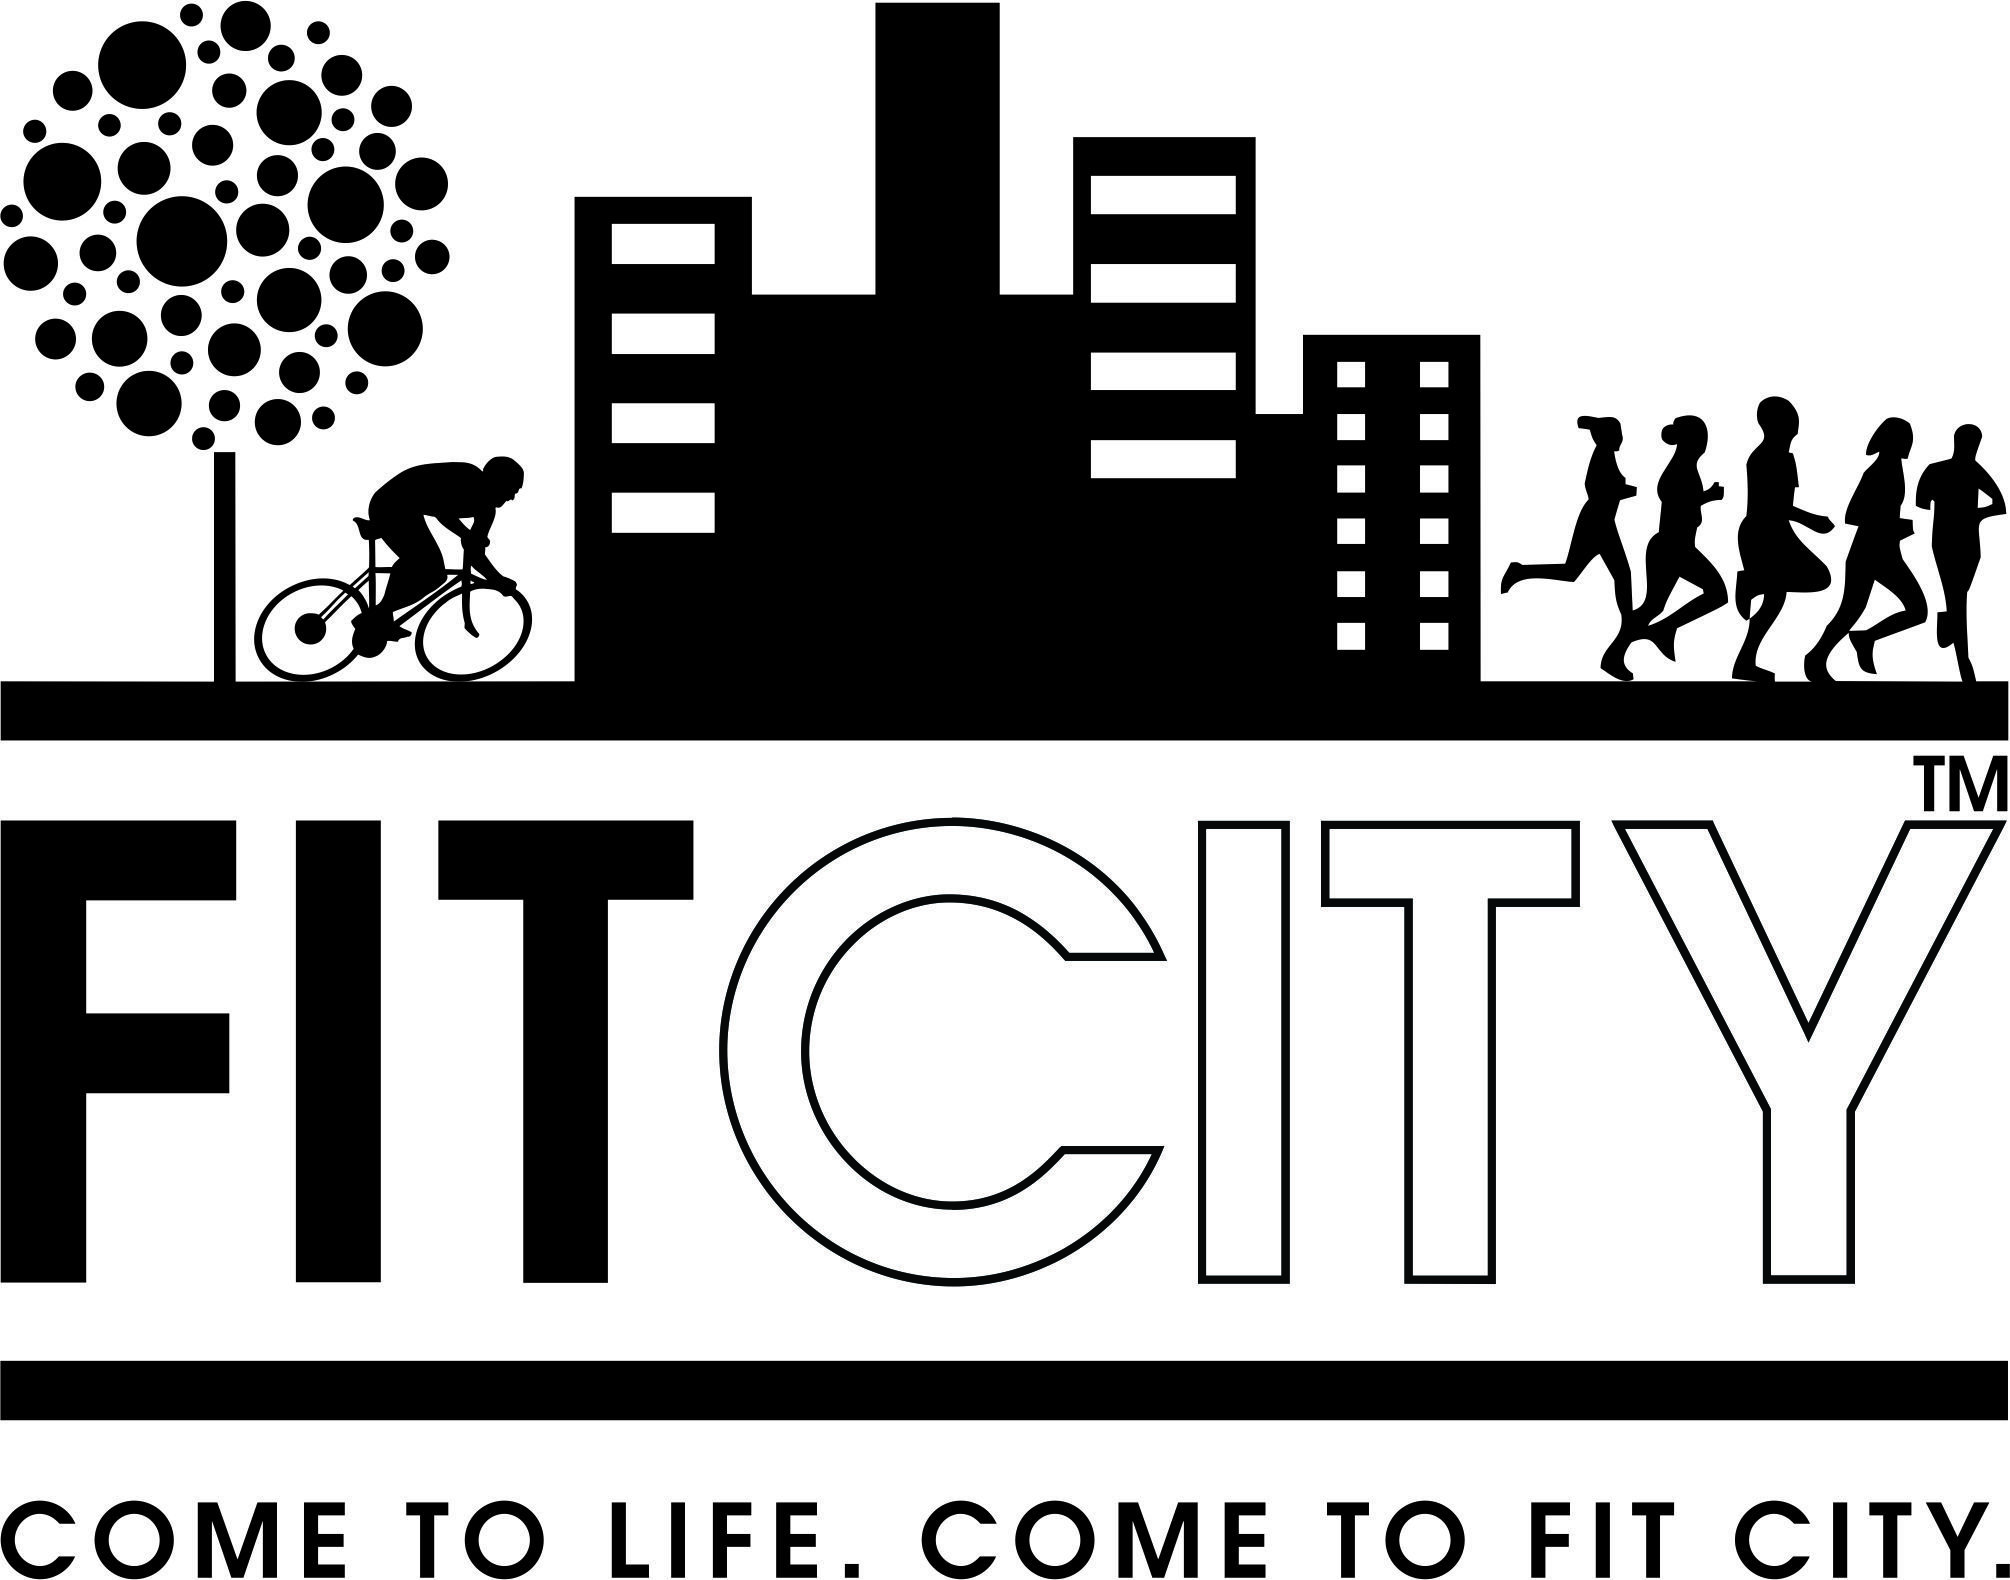 FITCITY Fitnes center,